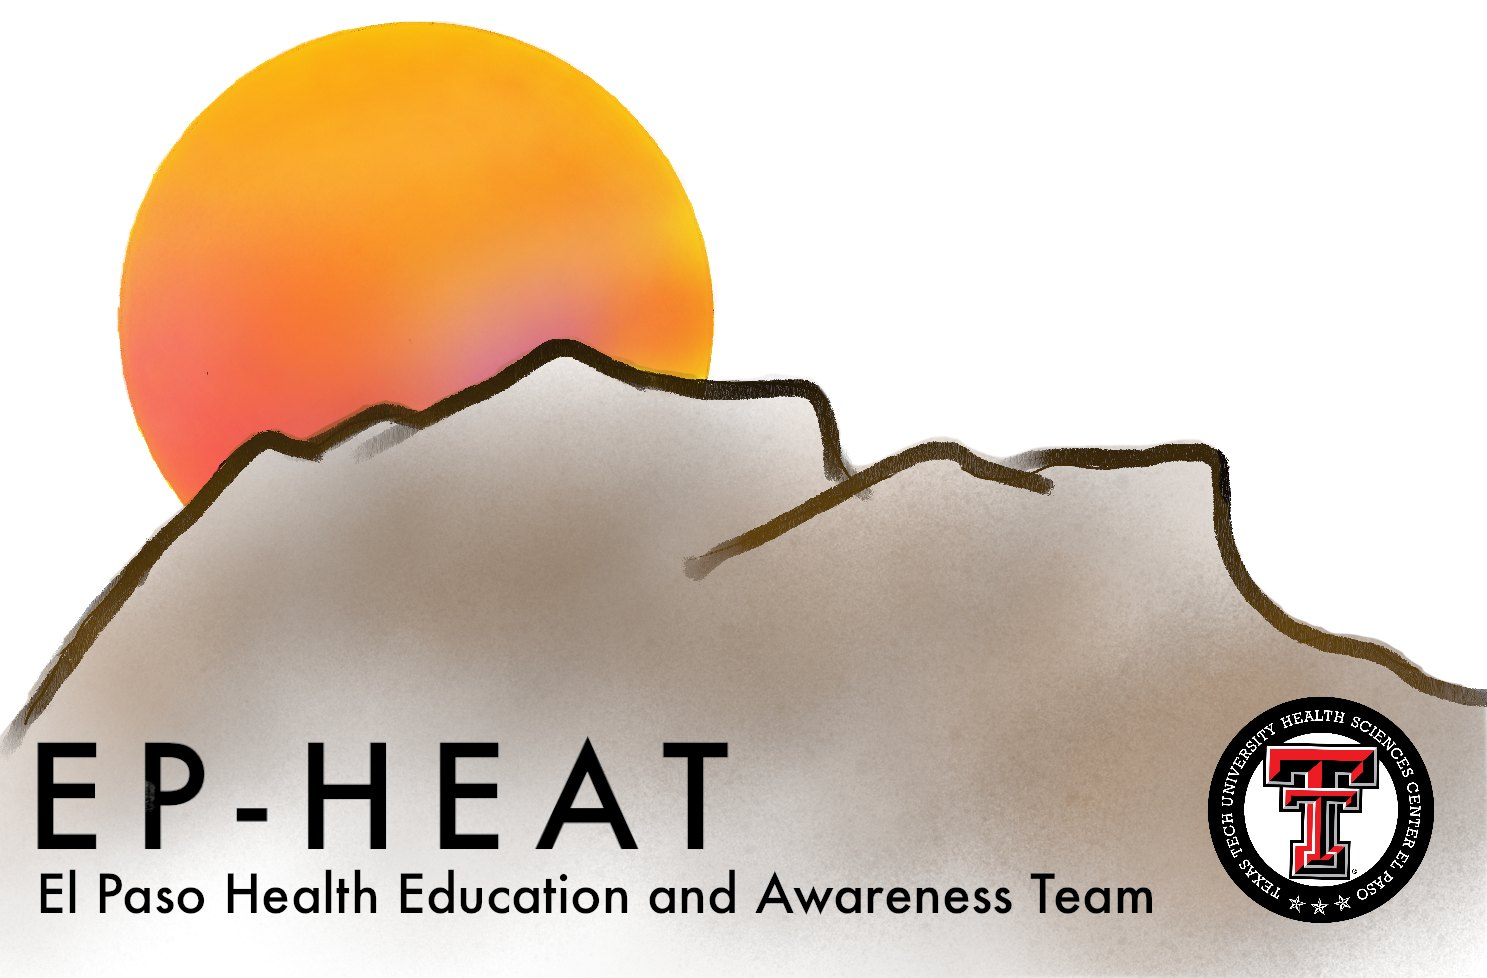 EP HEAT artwork of mountain landscape and sunset. EP HEAT logo at the bottom right.